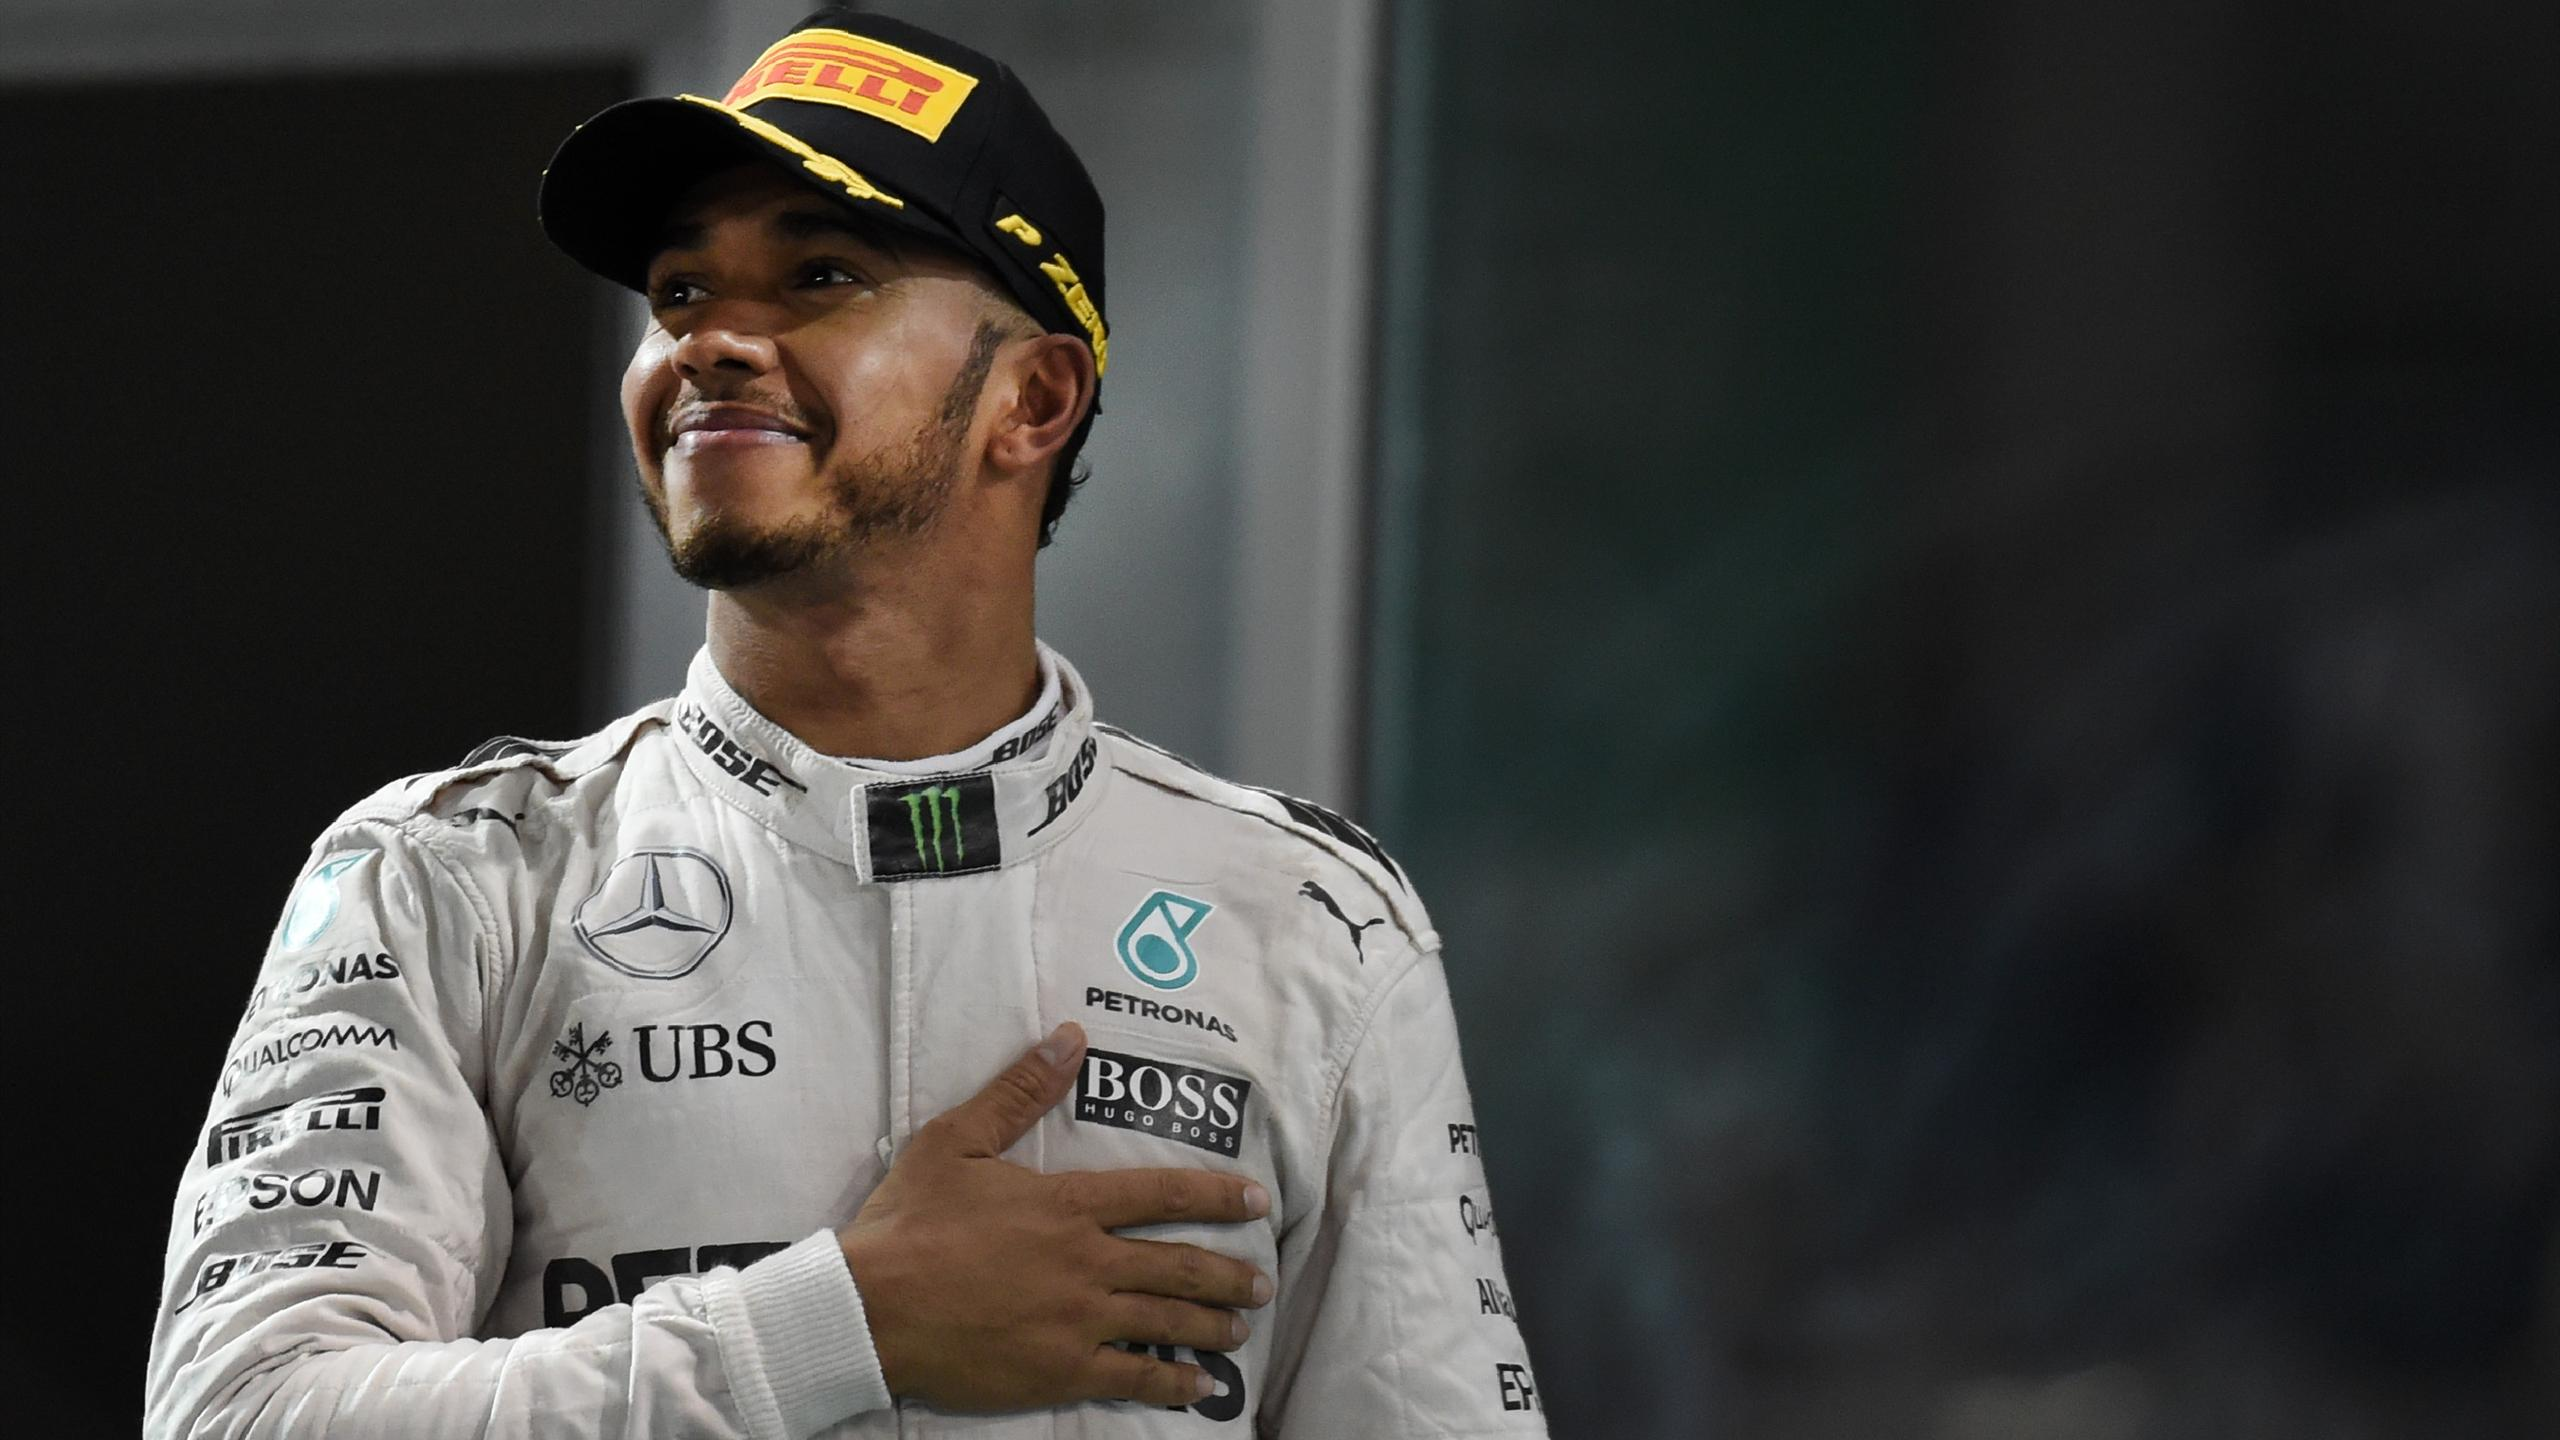 Mercedes AMG Petronas F1 Team's British driver Lewis Hamilton celebrates after winning the Abu Dhabi Formula One Grand Prix at the Yas Marina circuit